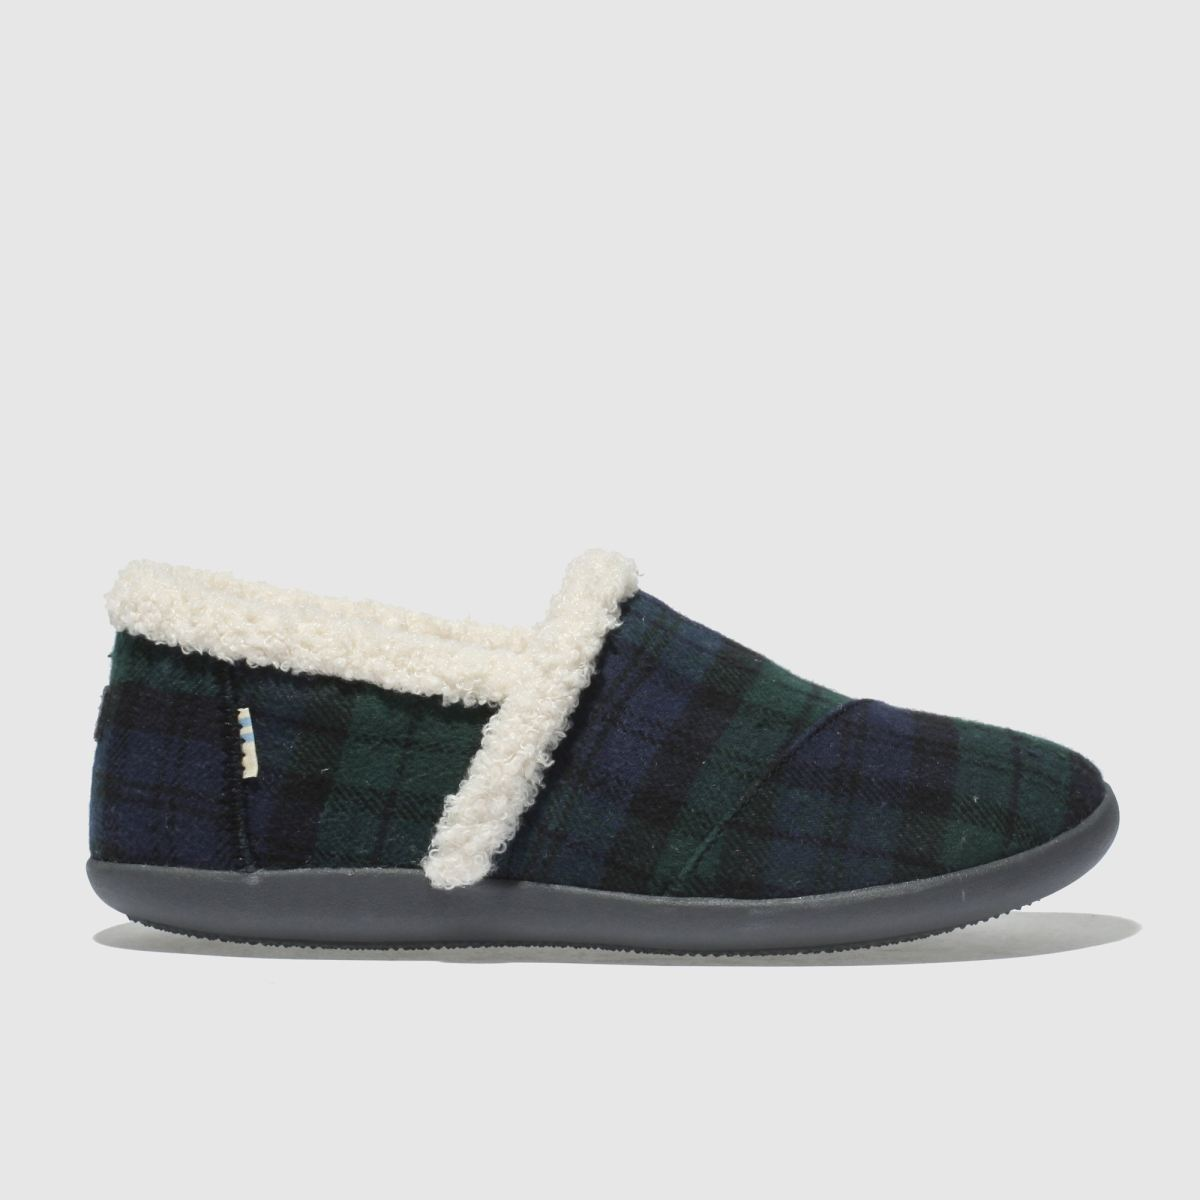 Toms Dark Green House Slipper Boots Youth